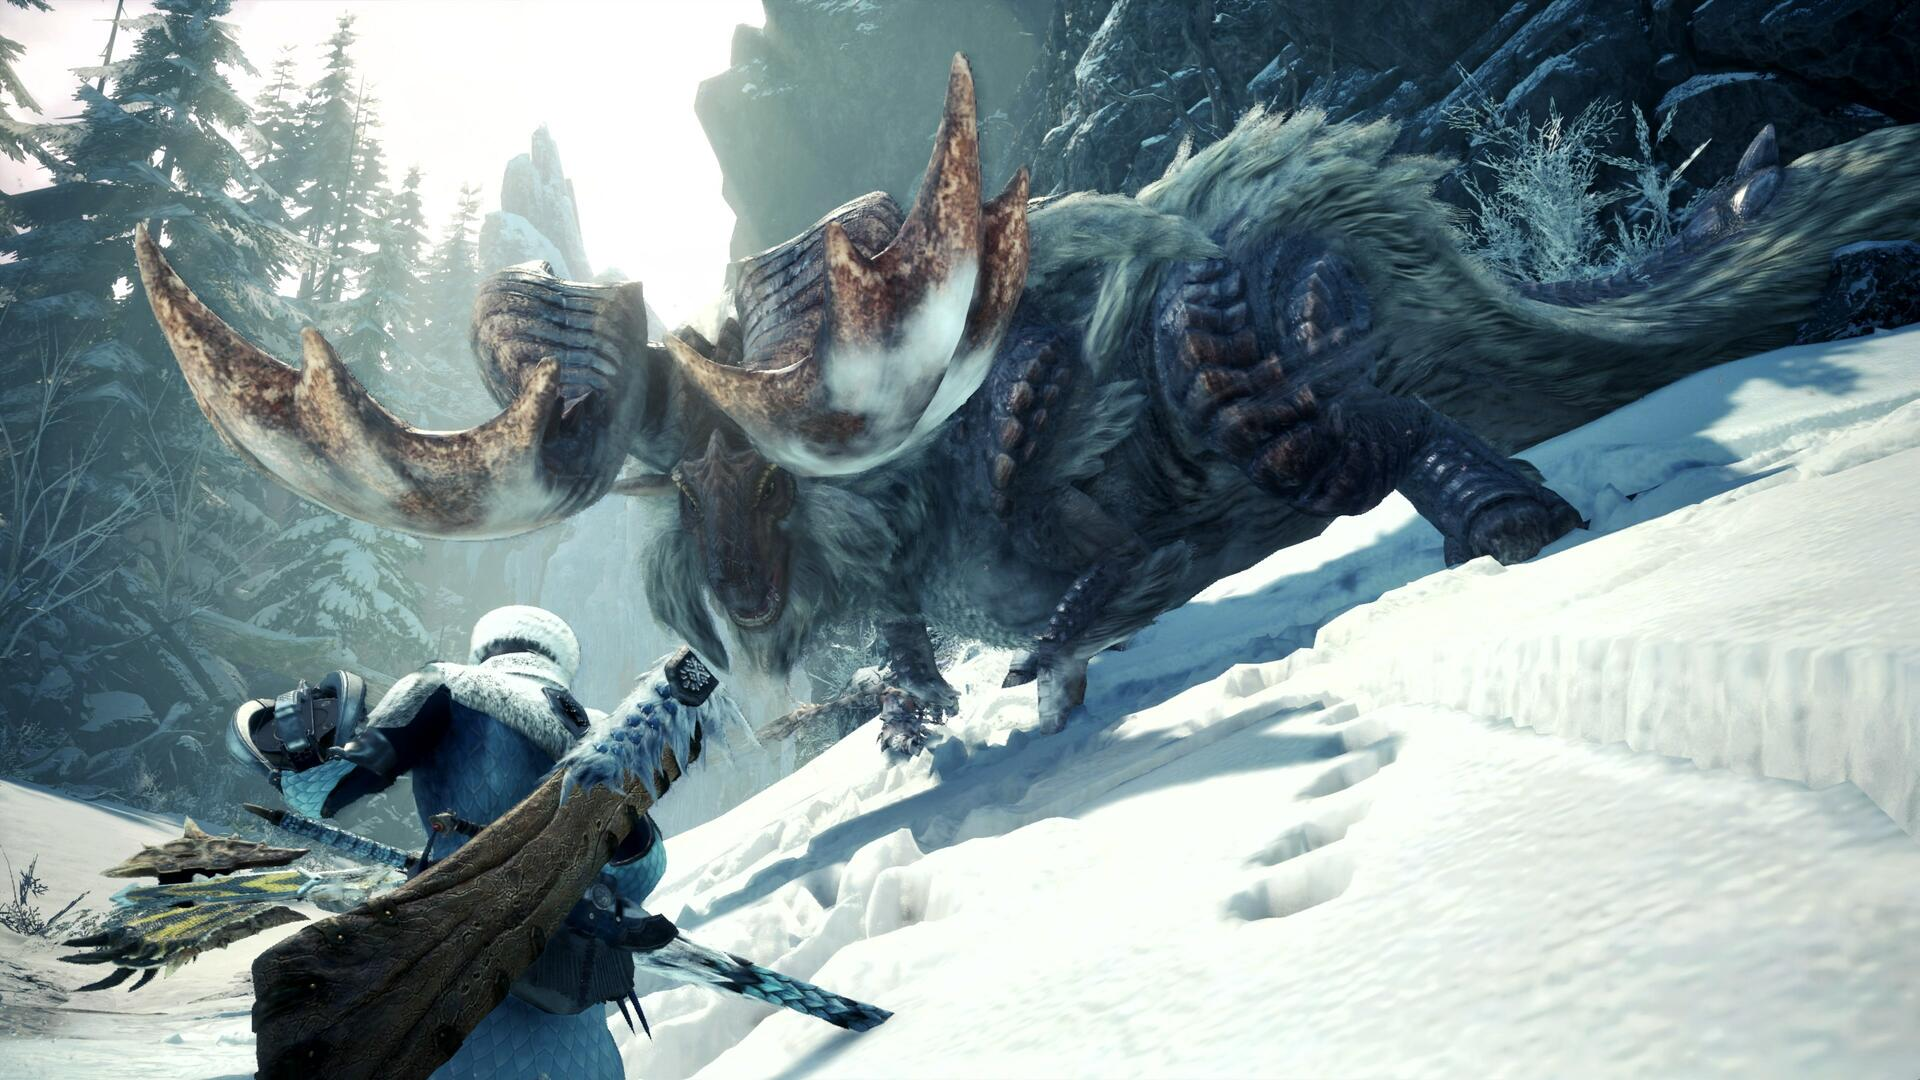 Monster Hunter: World Iceborne Will Have as Much Content as the Original Game, Capcom Confirms